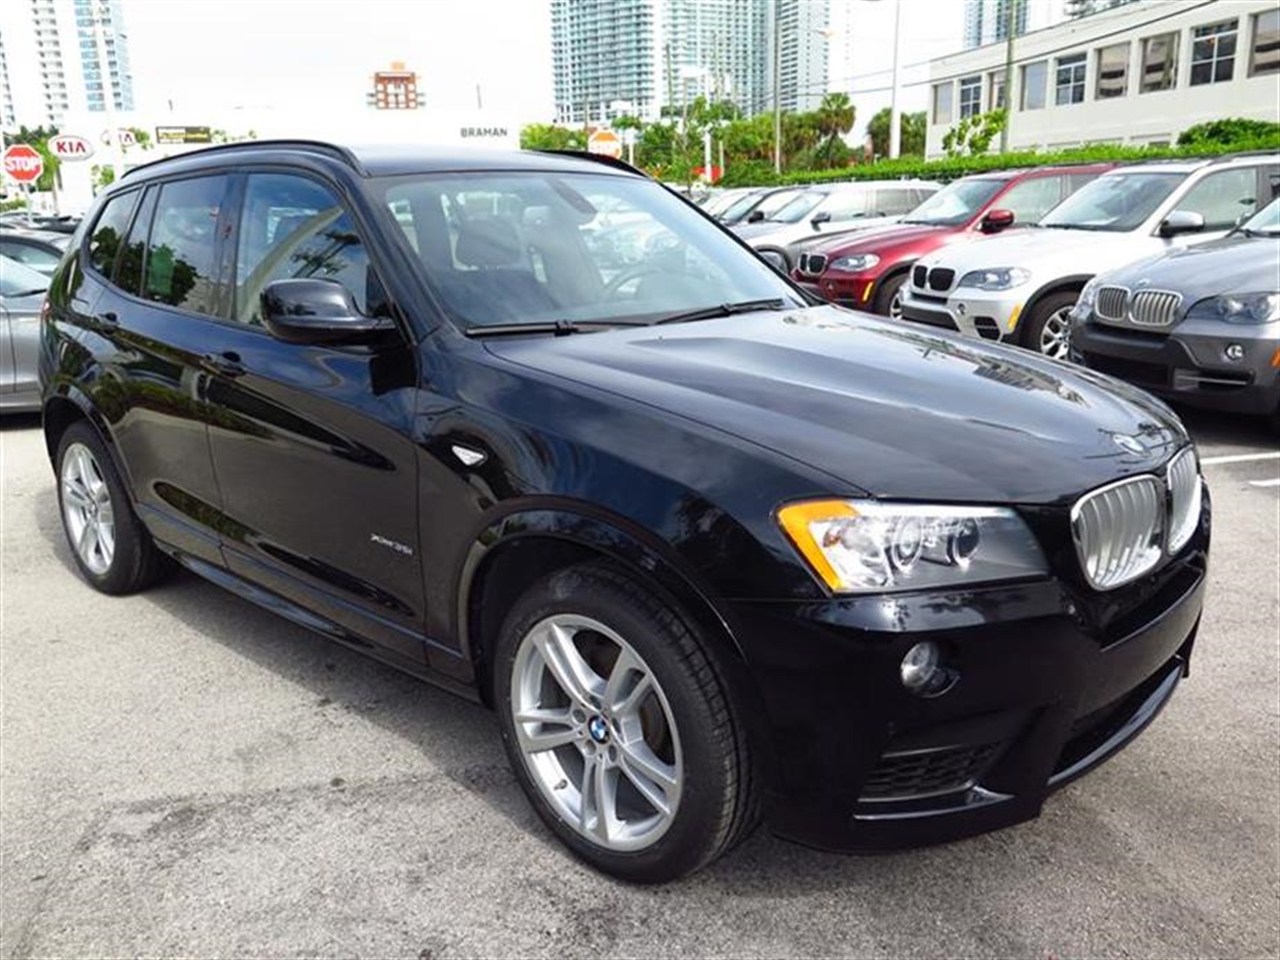 2012 BMW X3 AWD 4dr 35i 32503 miles 3-spoke leather-wrapped multi-function sport steering wheel wi